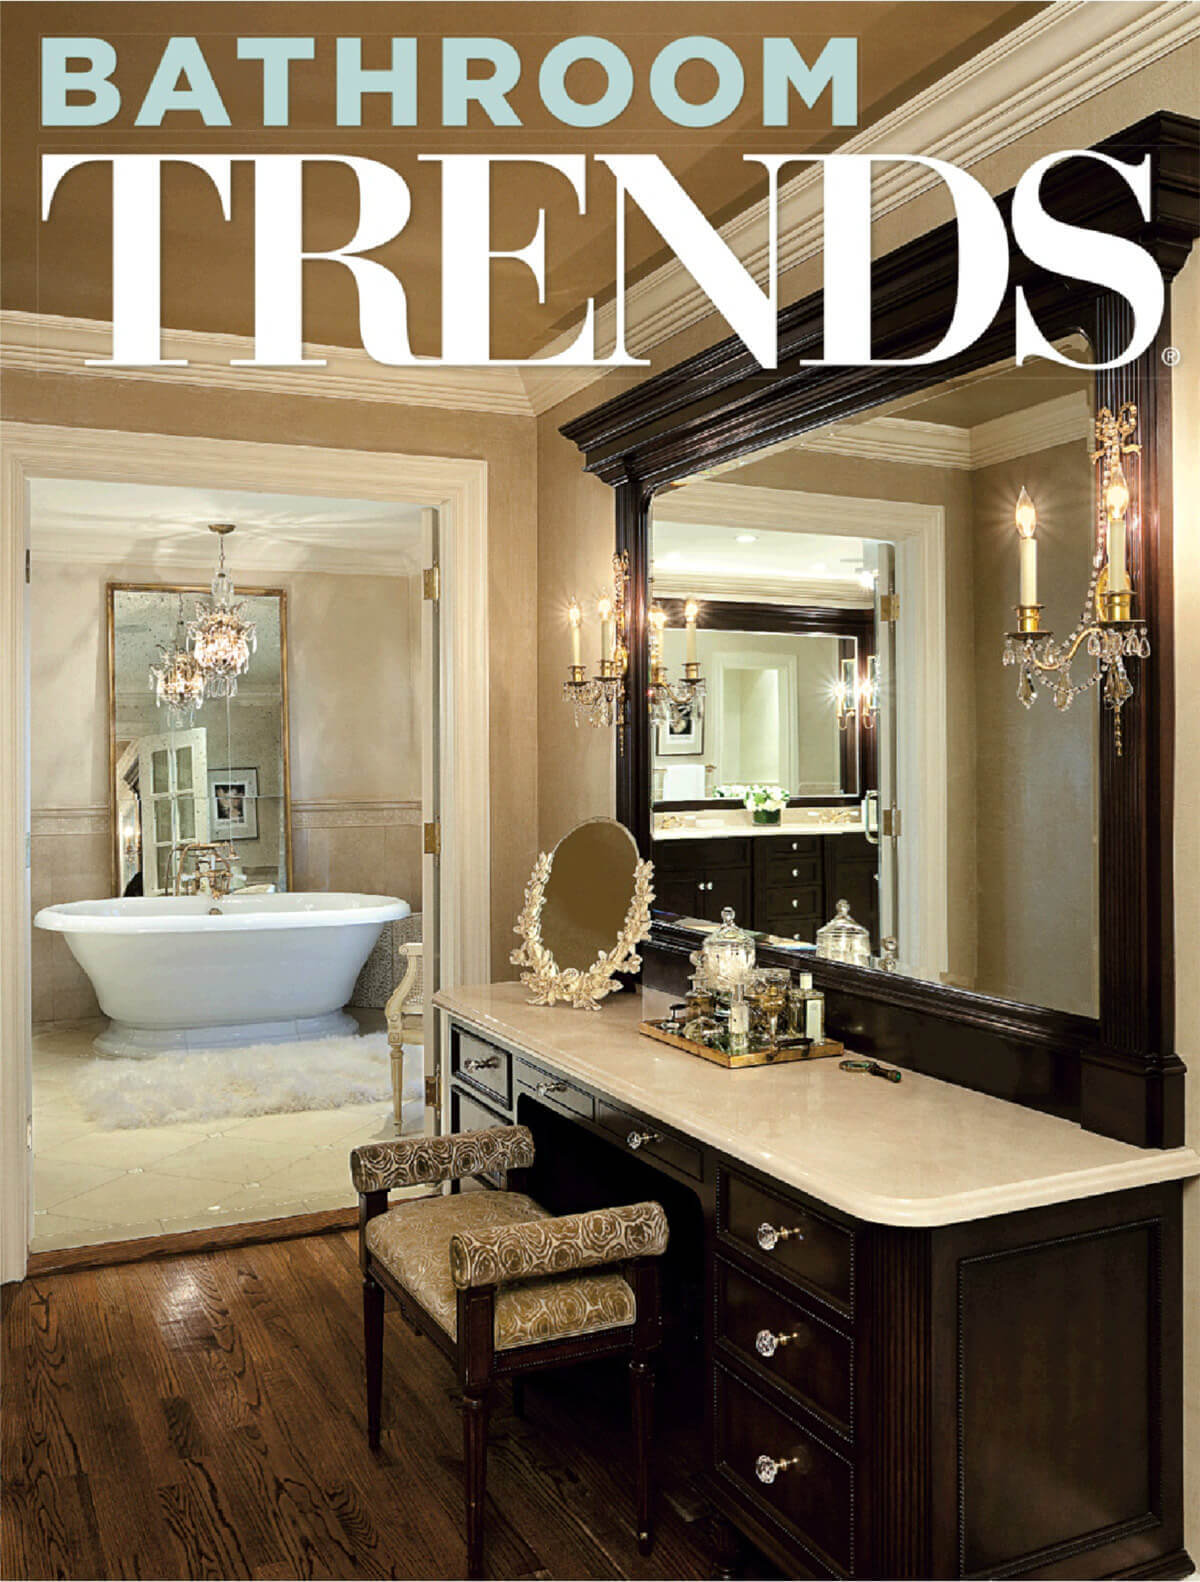 Bathroom trends magazine home design for New home bathroom trends